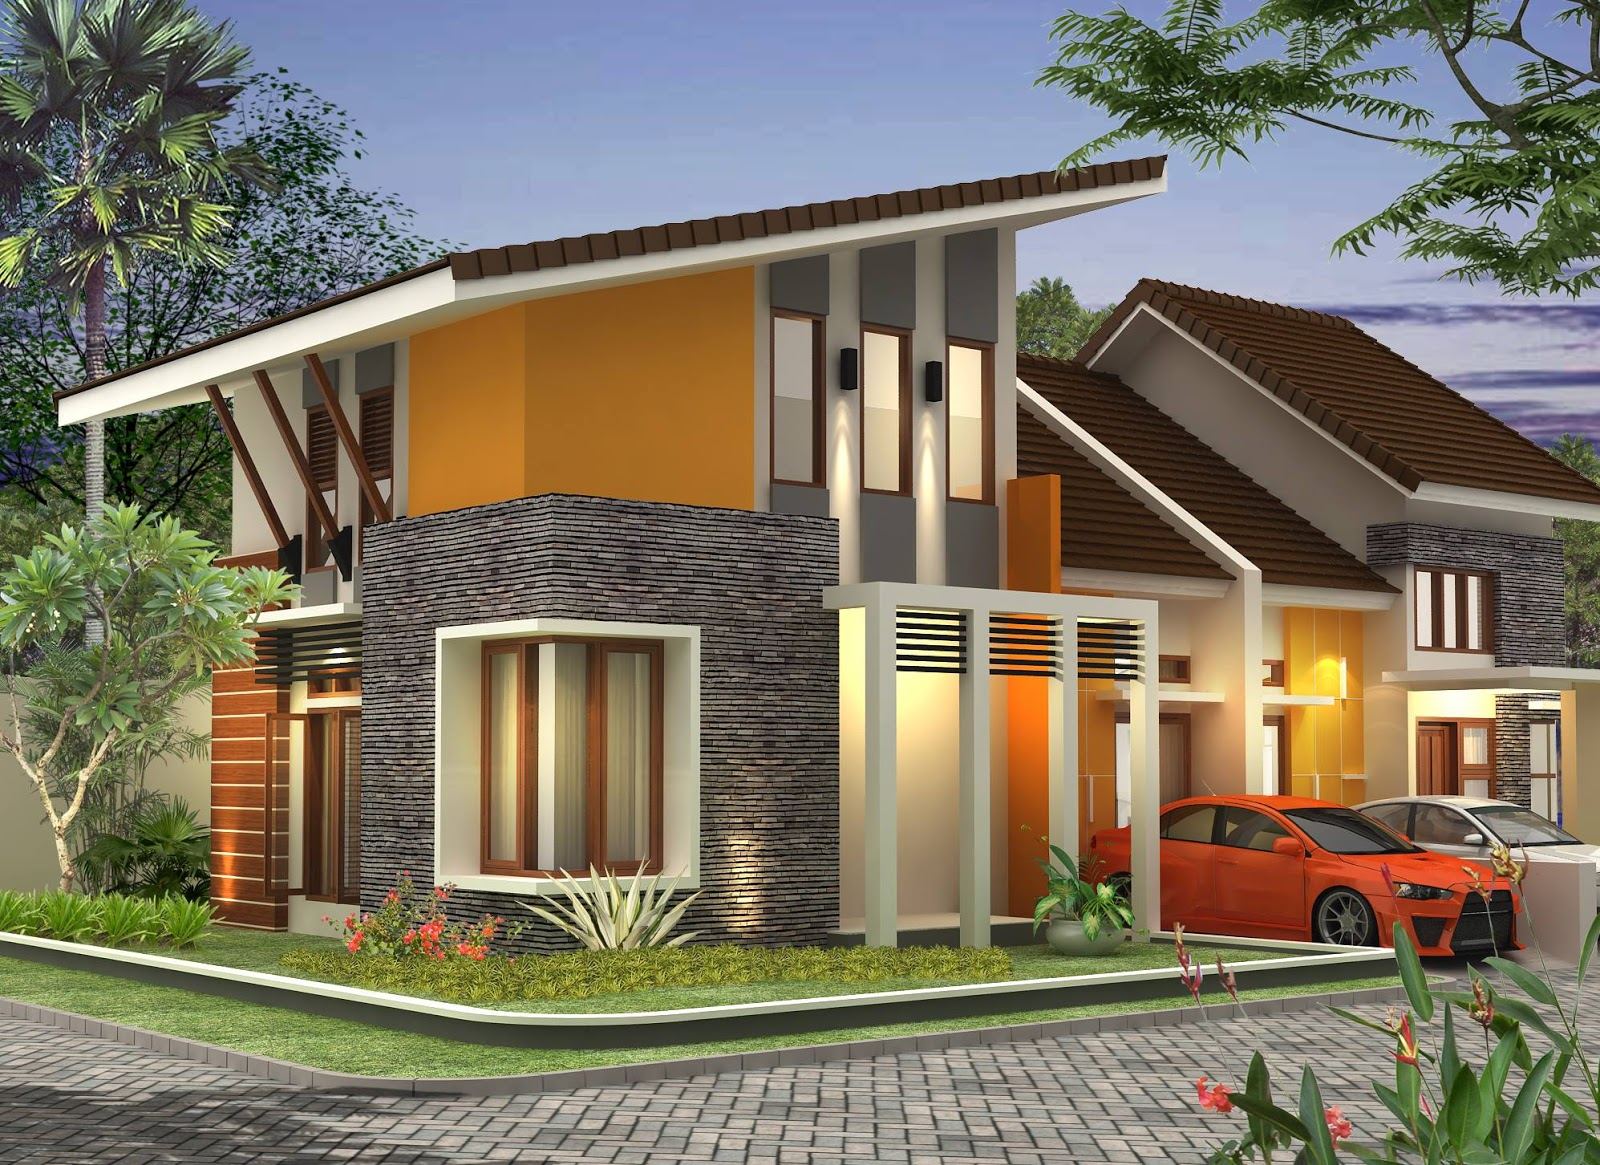 Top Model Atap Rumah Minimalis Trap 3 Gubukhome